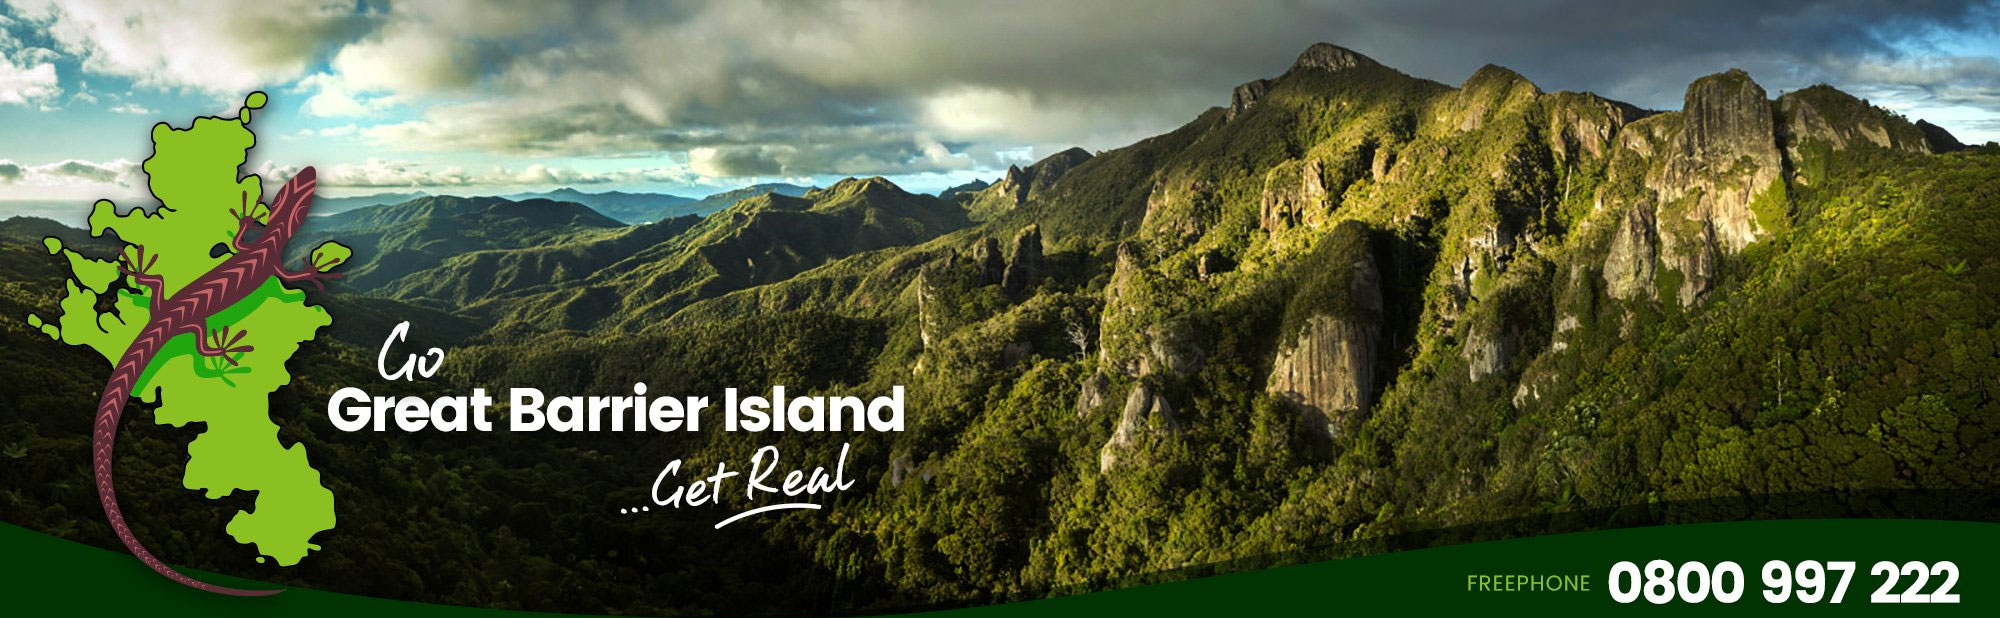 Great Barrier Island Tourism